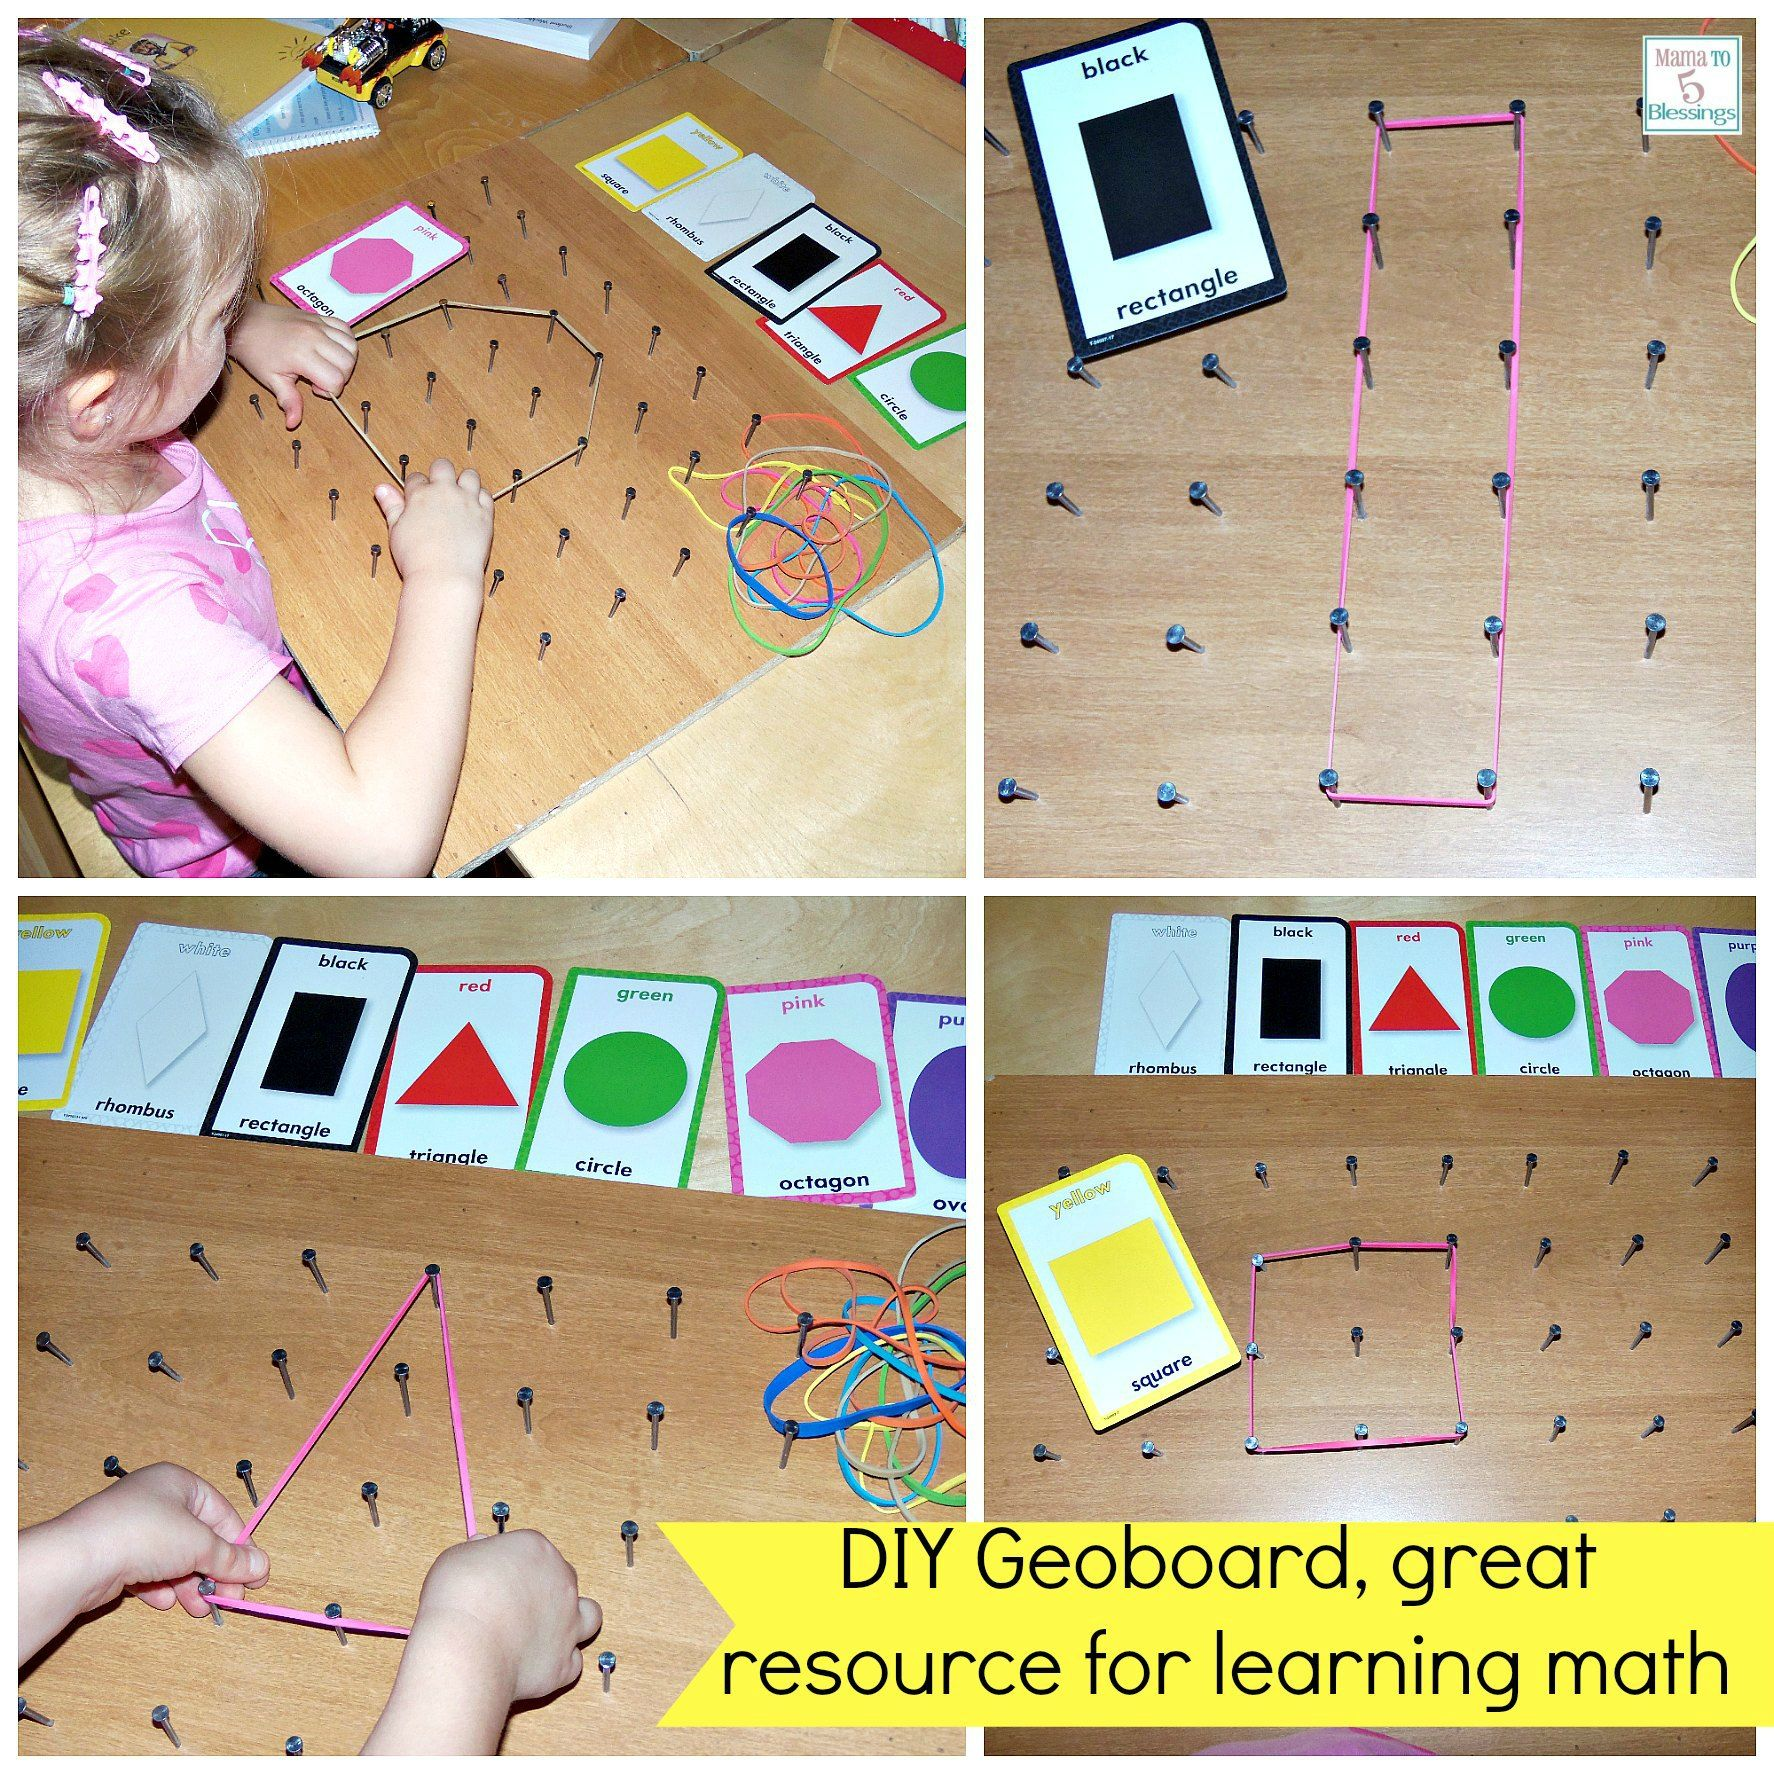 Diy Goeboard Perfect Resource For Learning Learning Hands